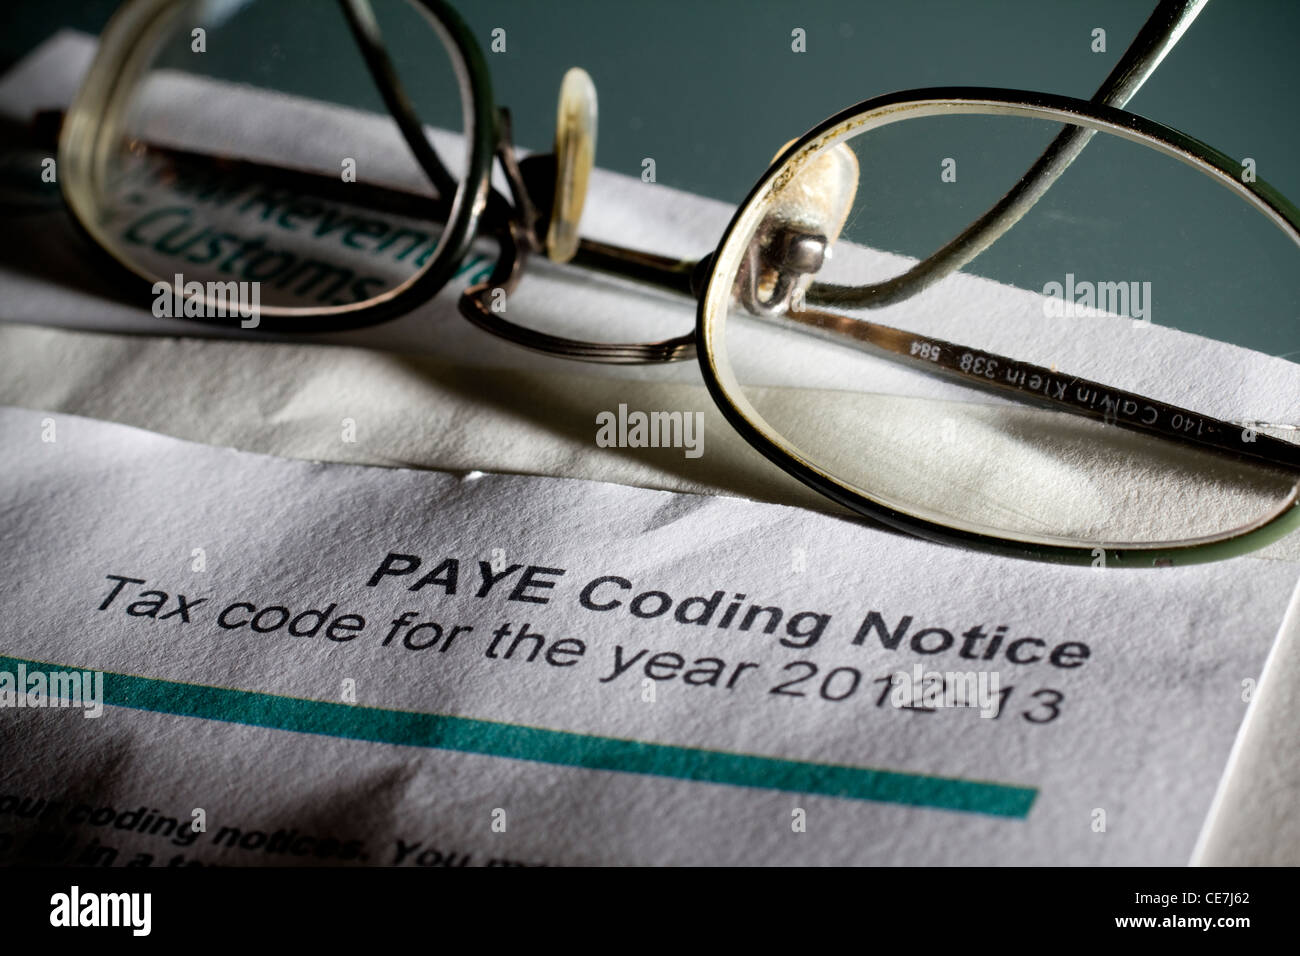 paye coding notice for the year 2012-2013 - Stock Image